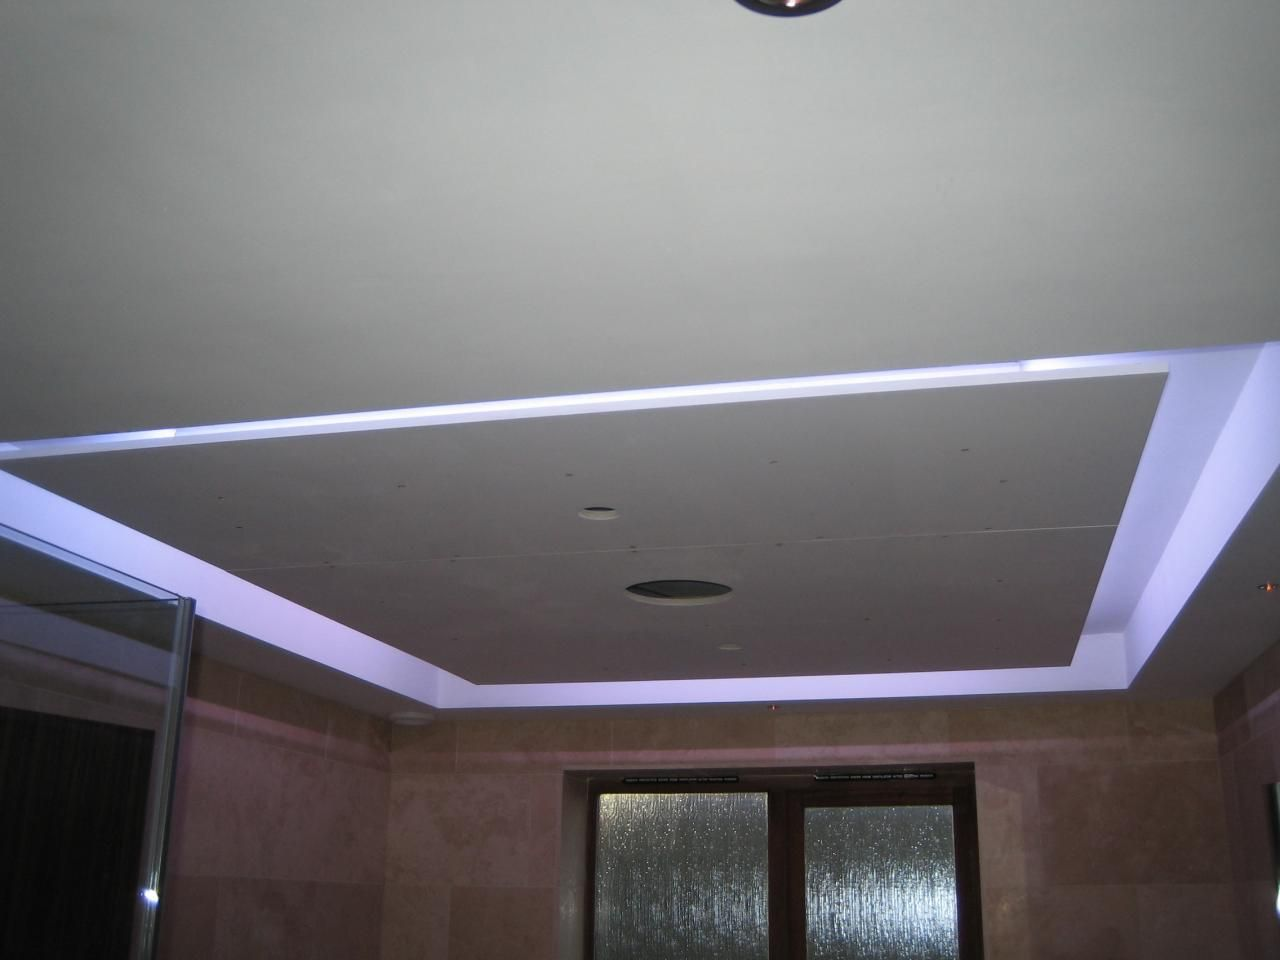 Image result for white drop ceiling recessed lighting   Office Style     Image result for white drop ceiling recessed lighting